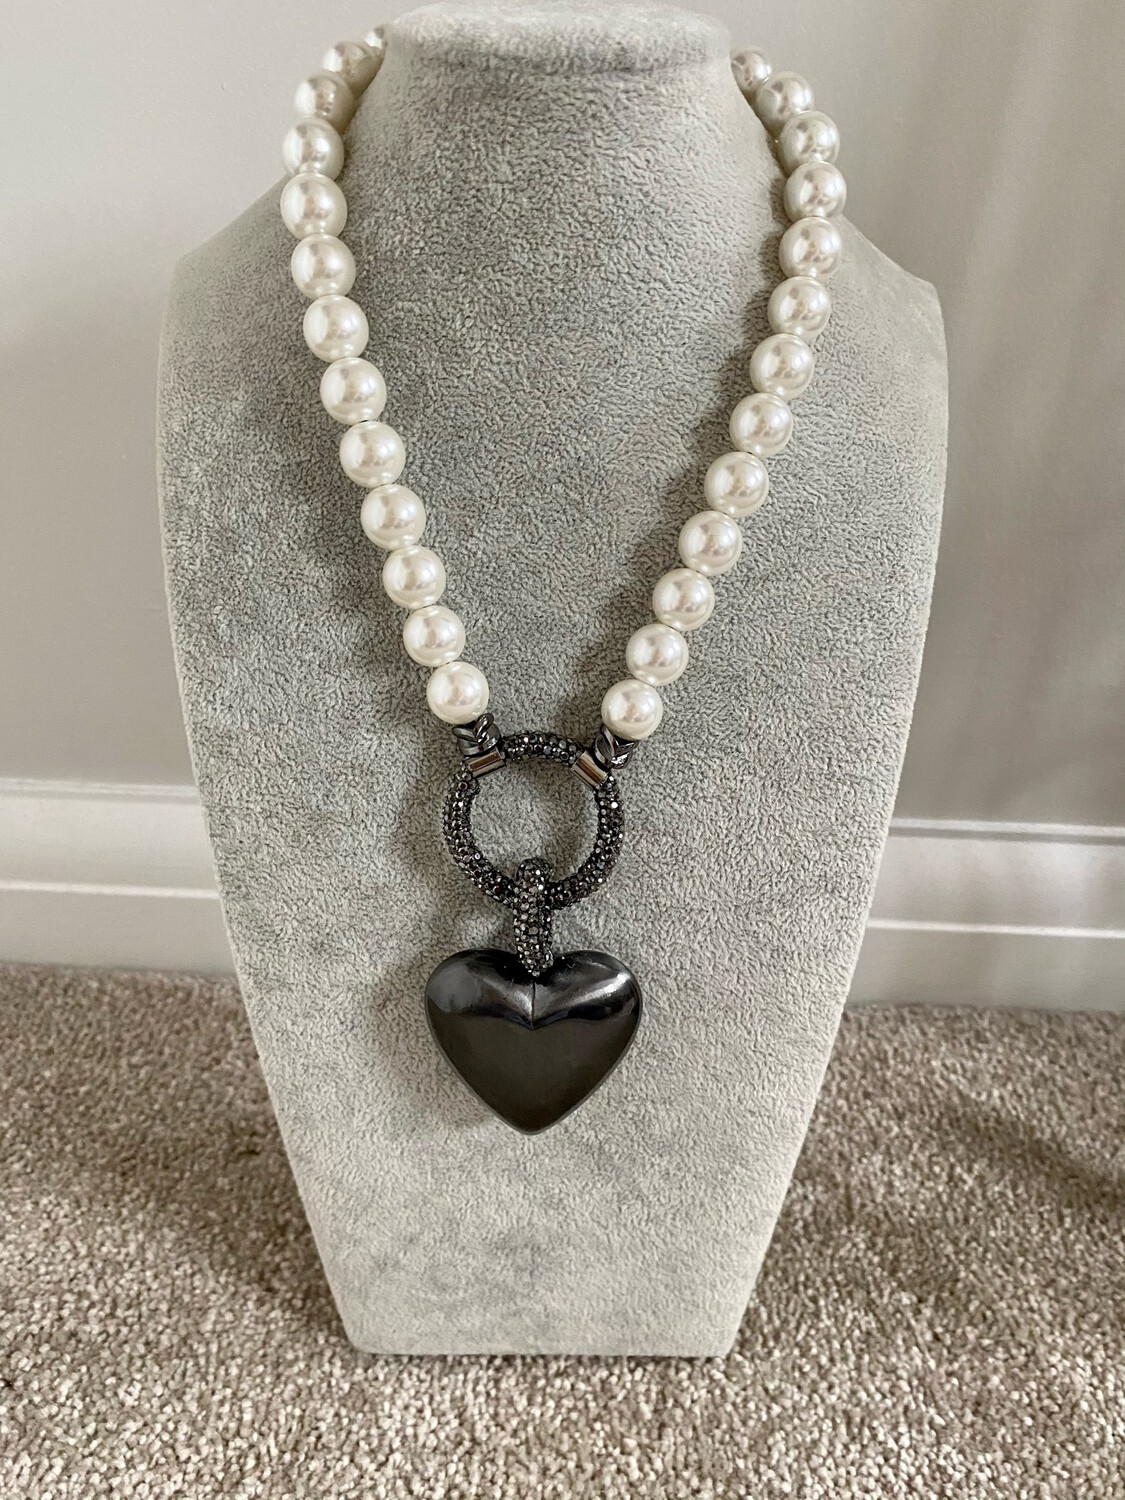 BEAUTIFUL PEARL HEART NECKLACE